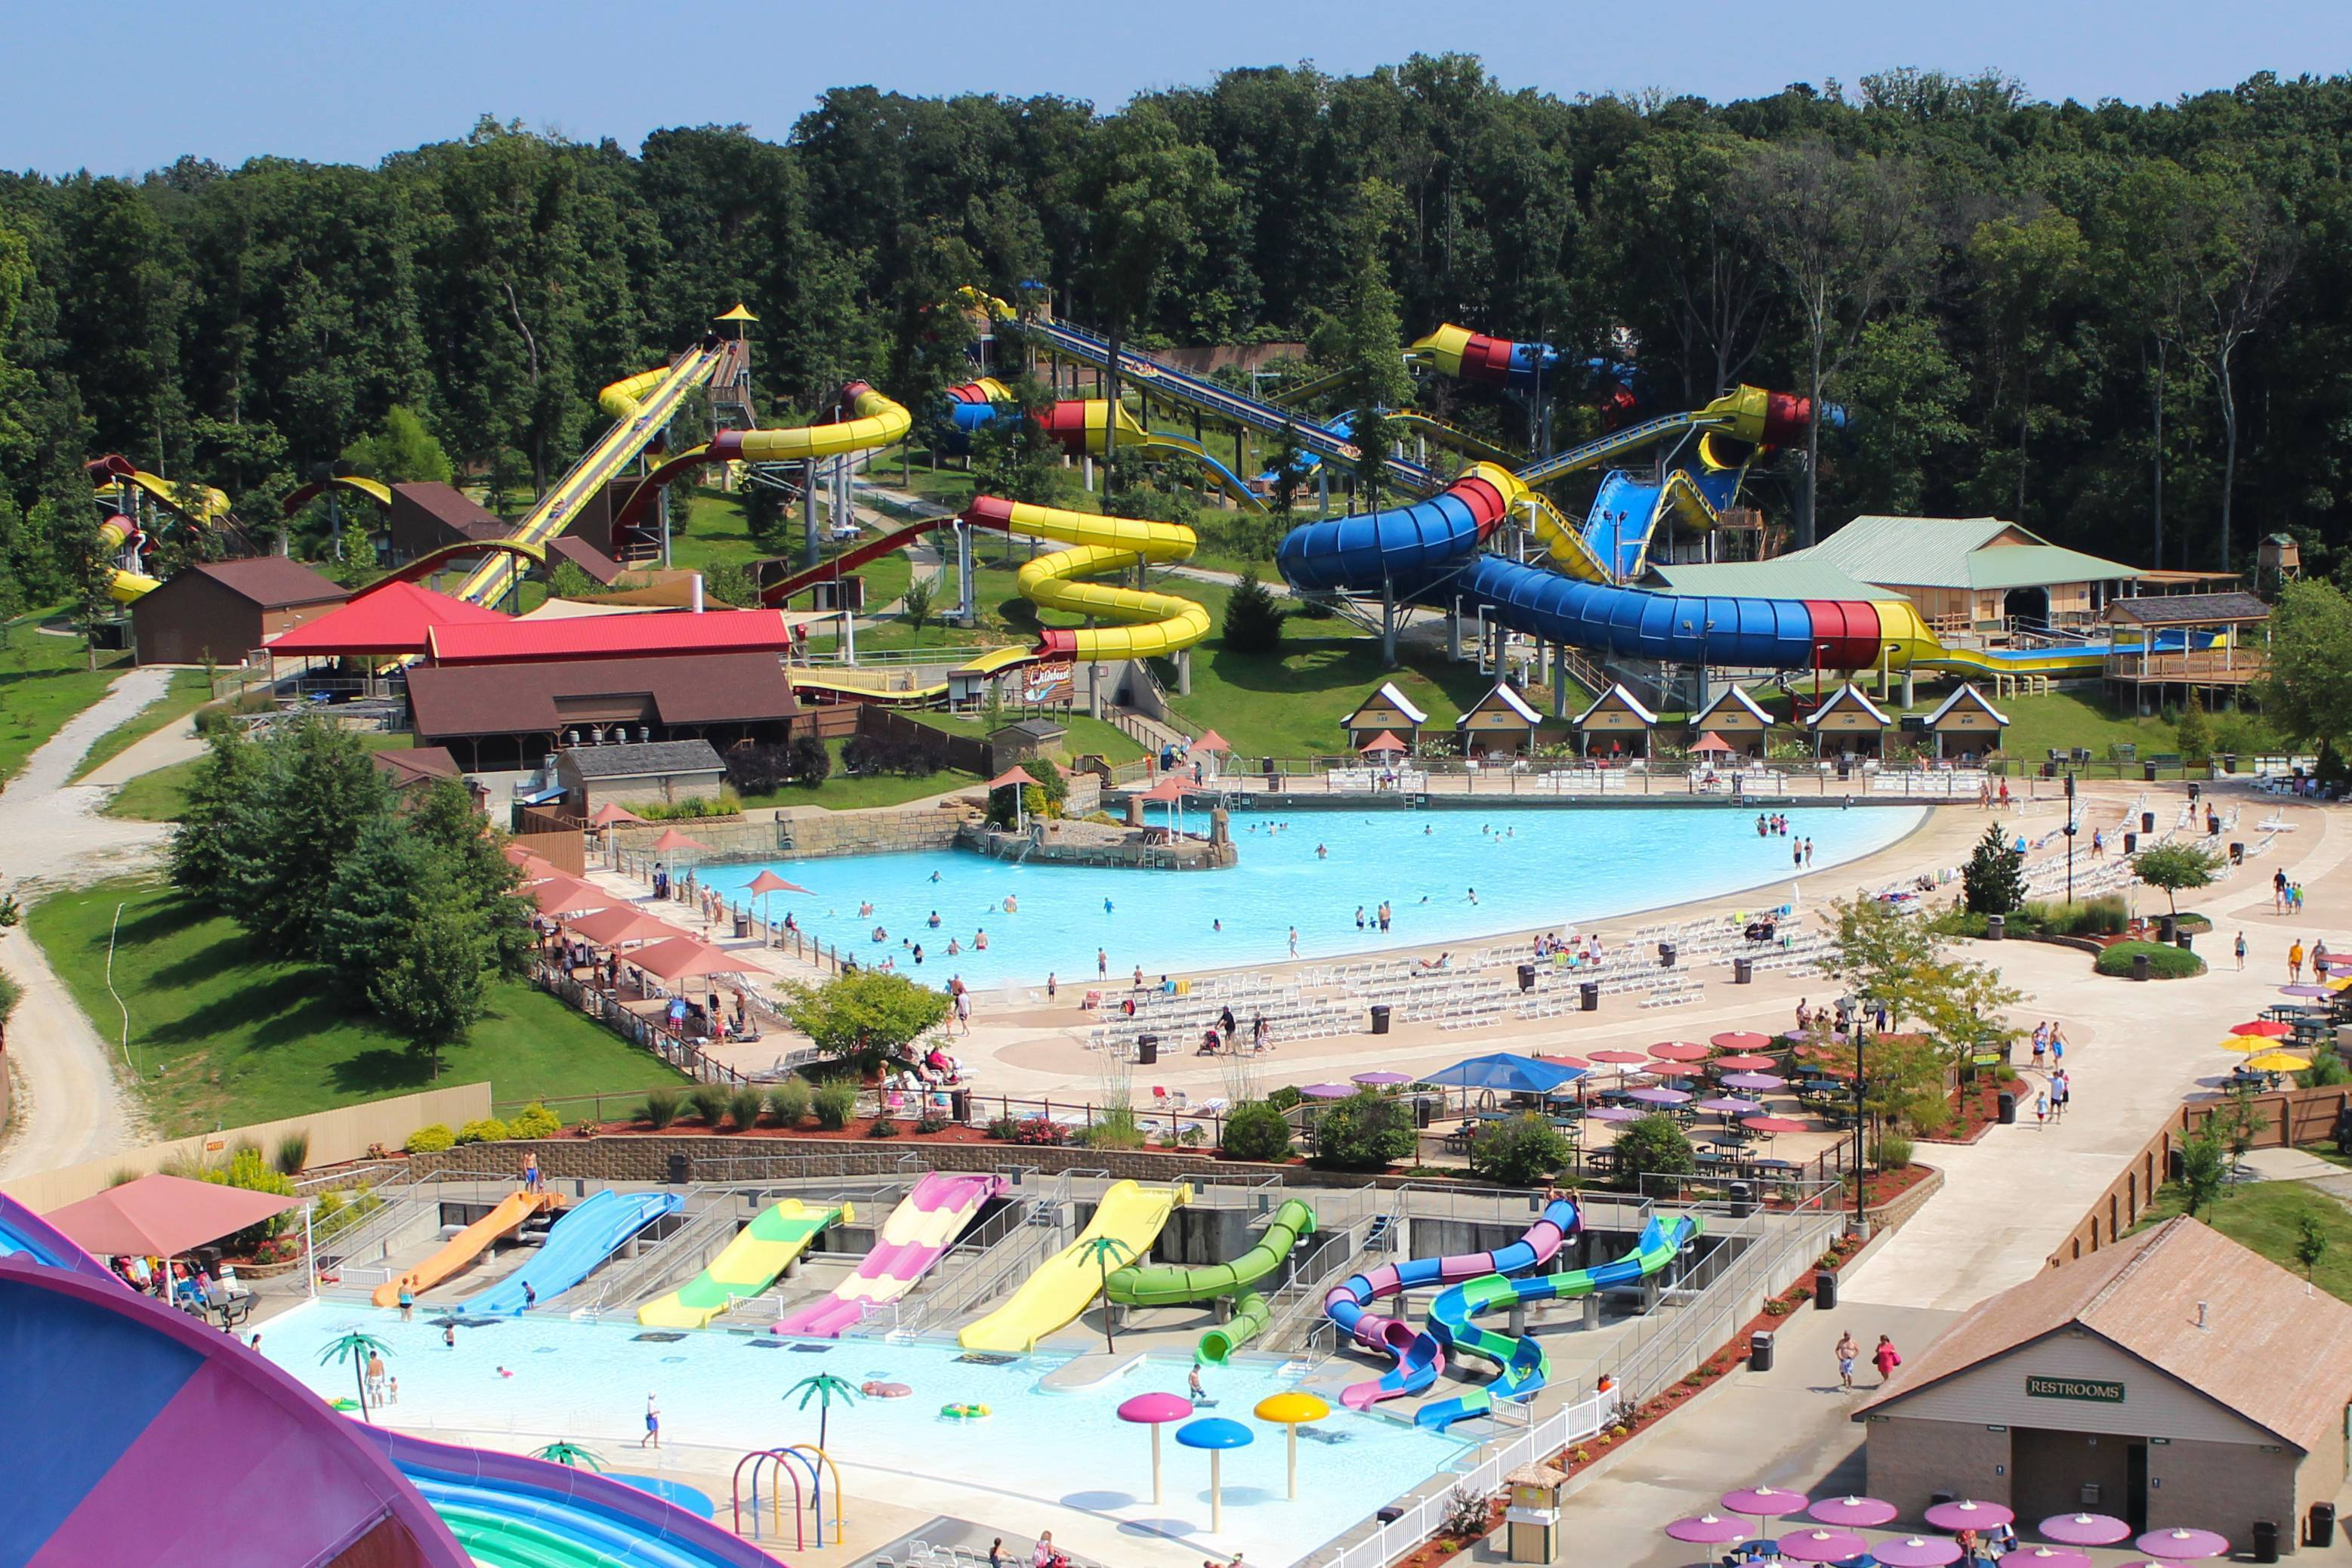 Wildebeest water coaster best water slides holiday world photos gumiabroncs Image collections